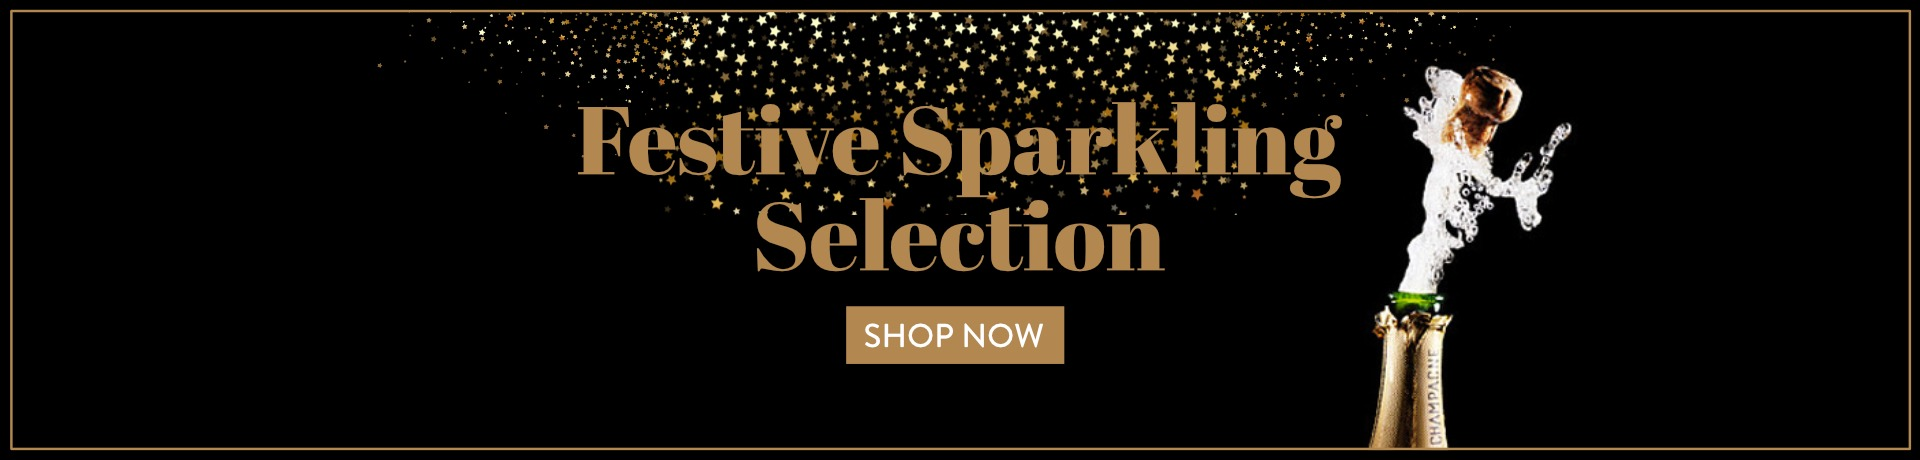 Festive Sparkling Wine Selection